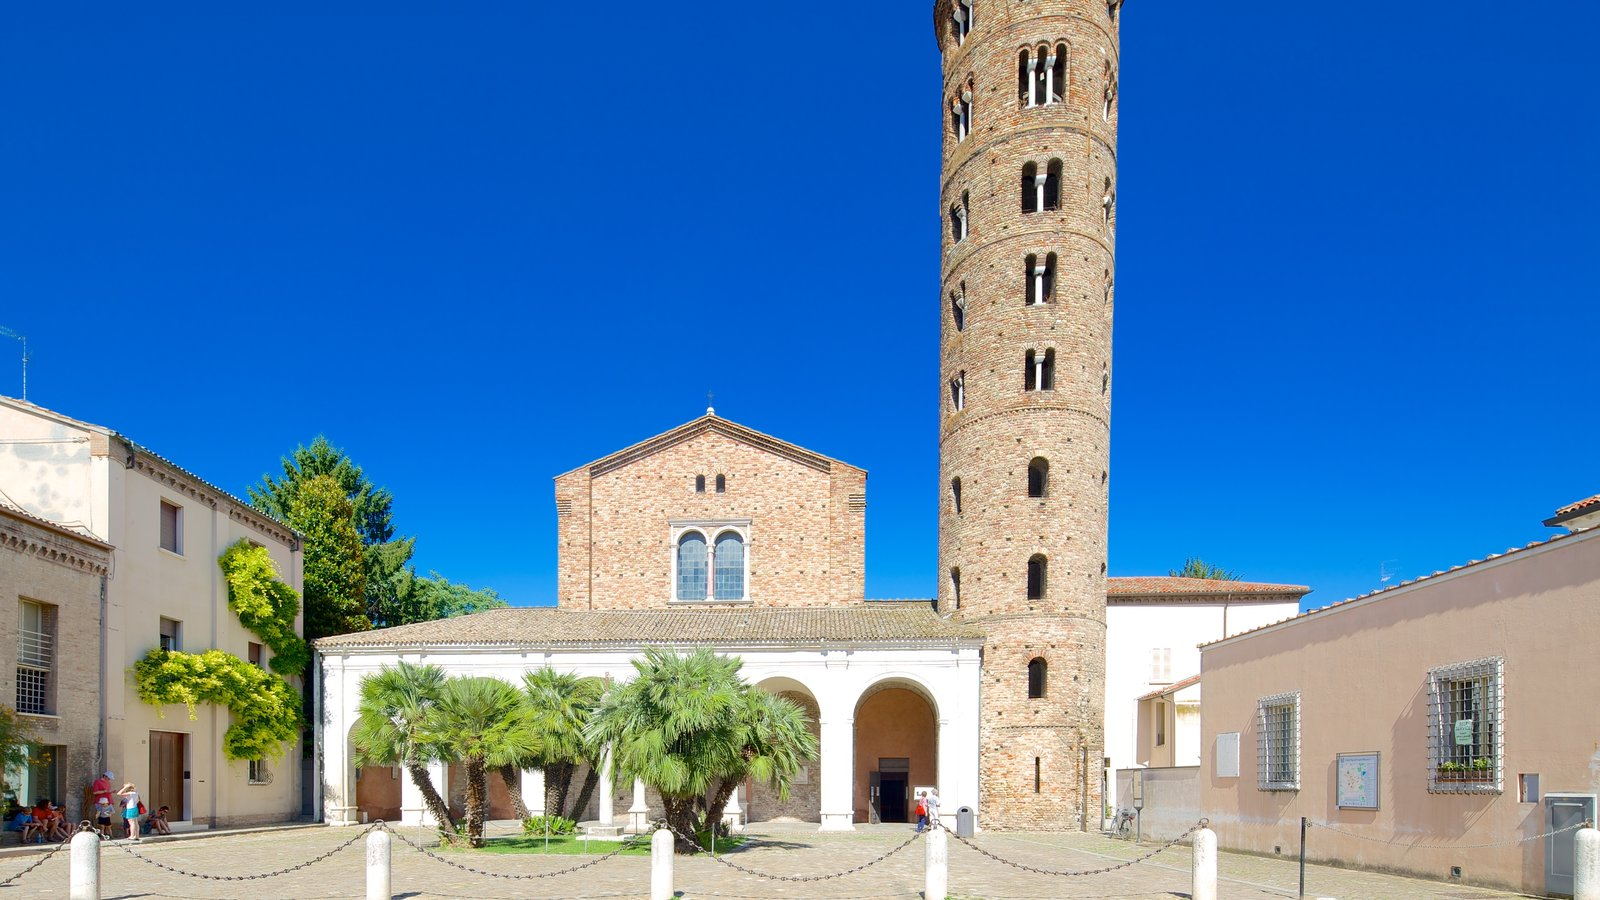 Basilica of Sant\' Apollinare Nuovo which includes street scenes and heritage elements